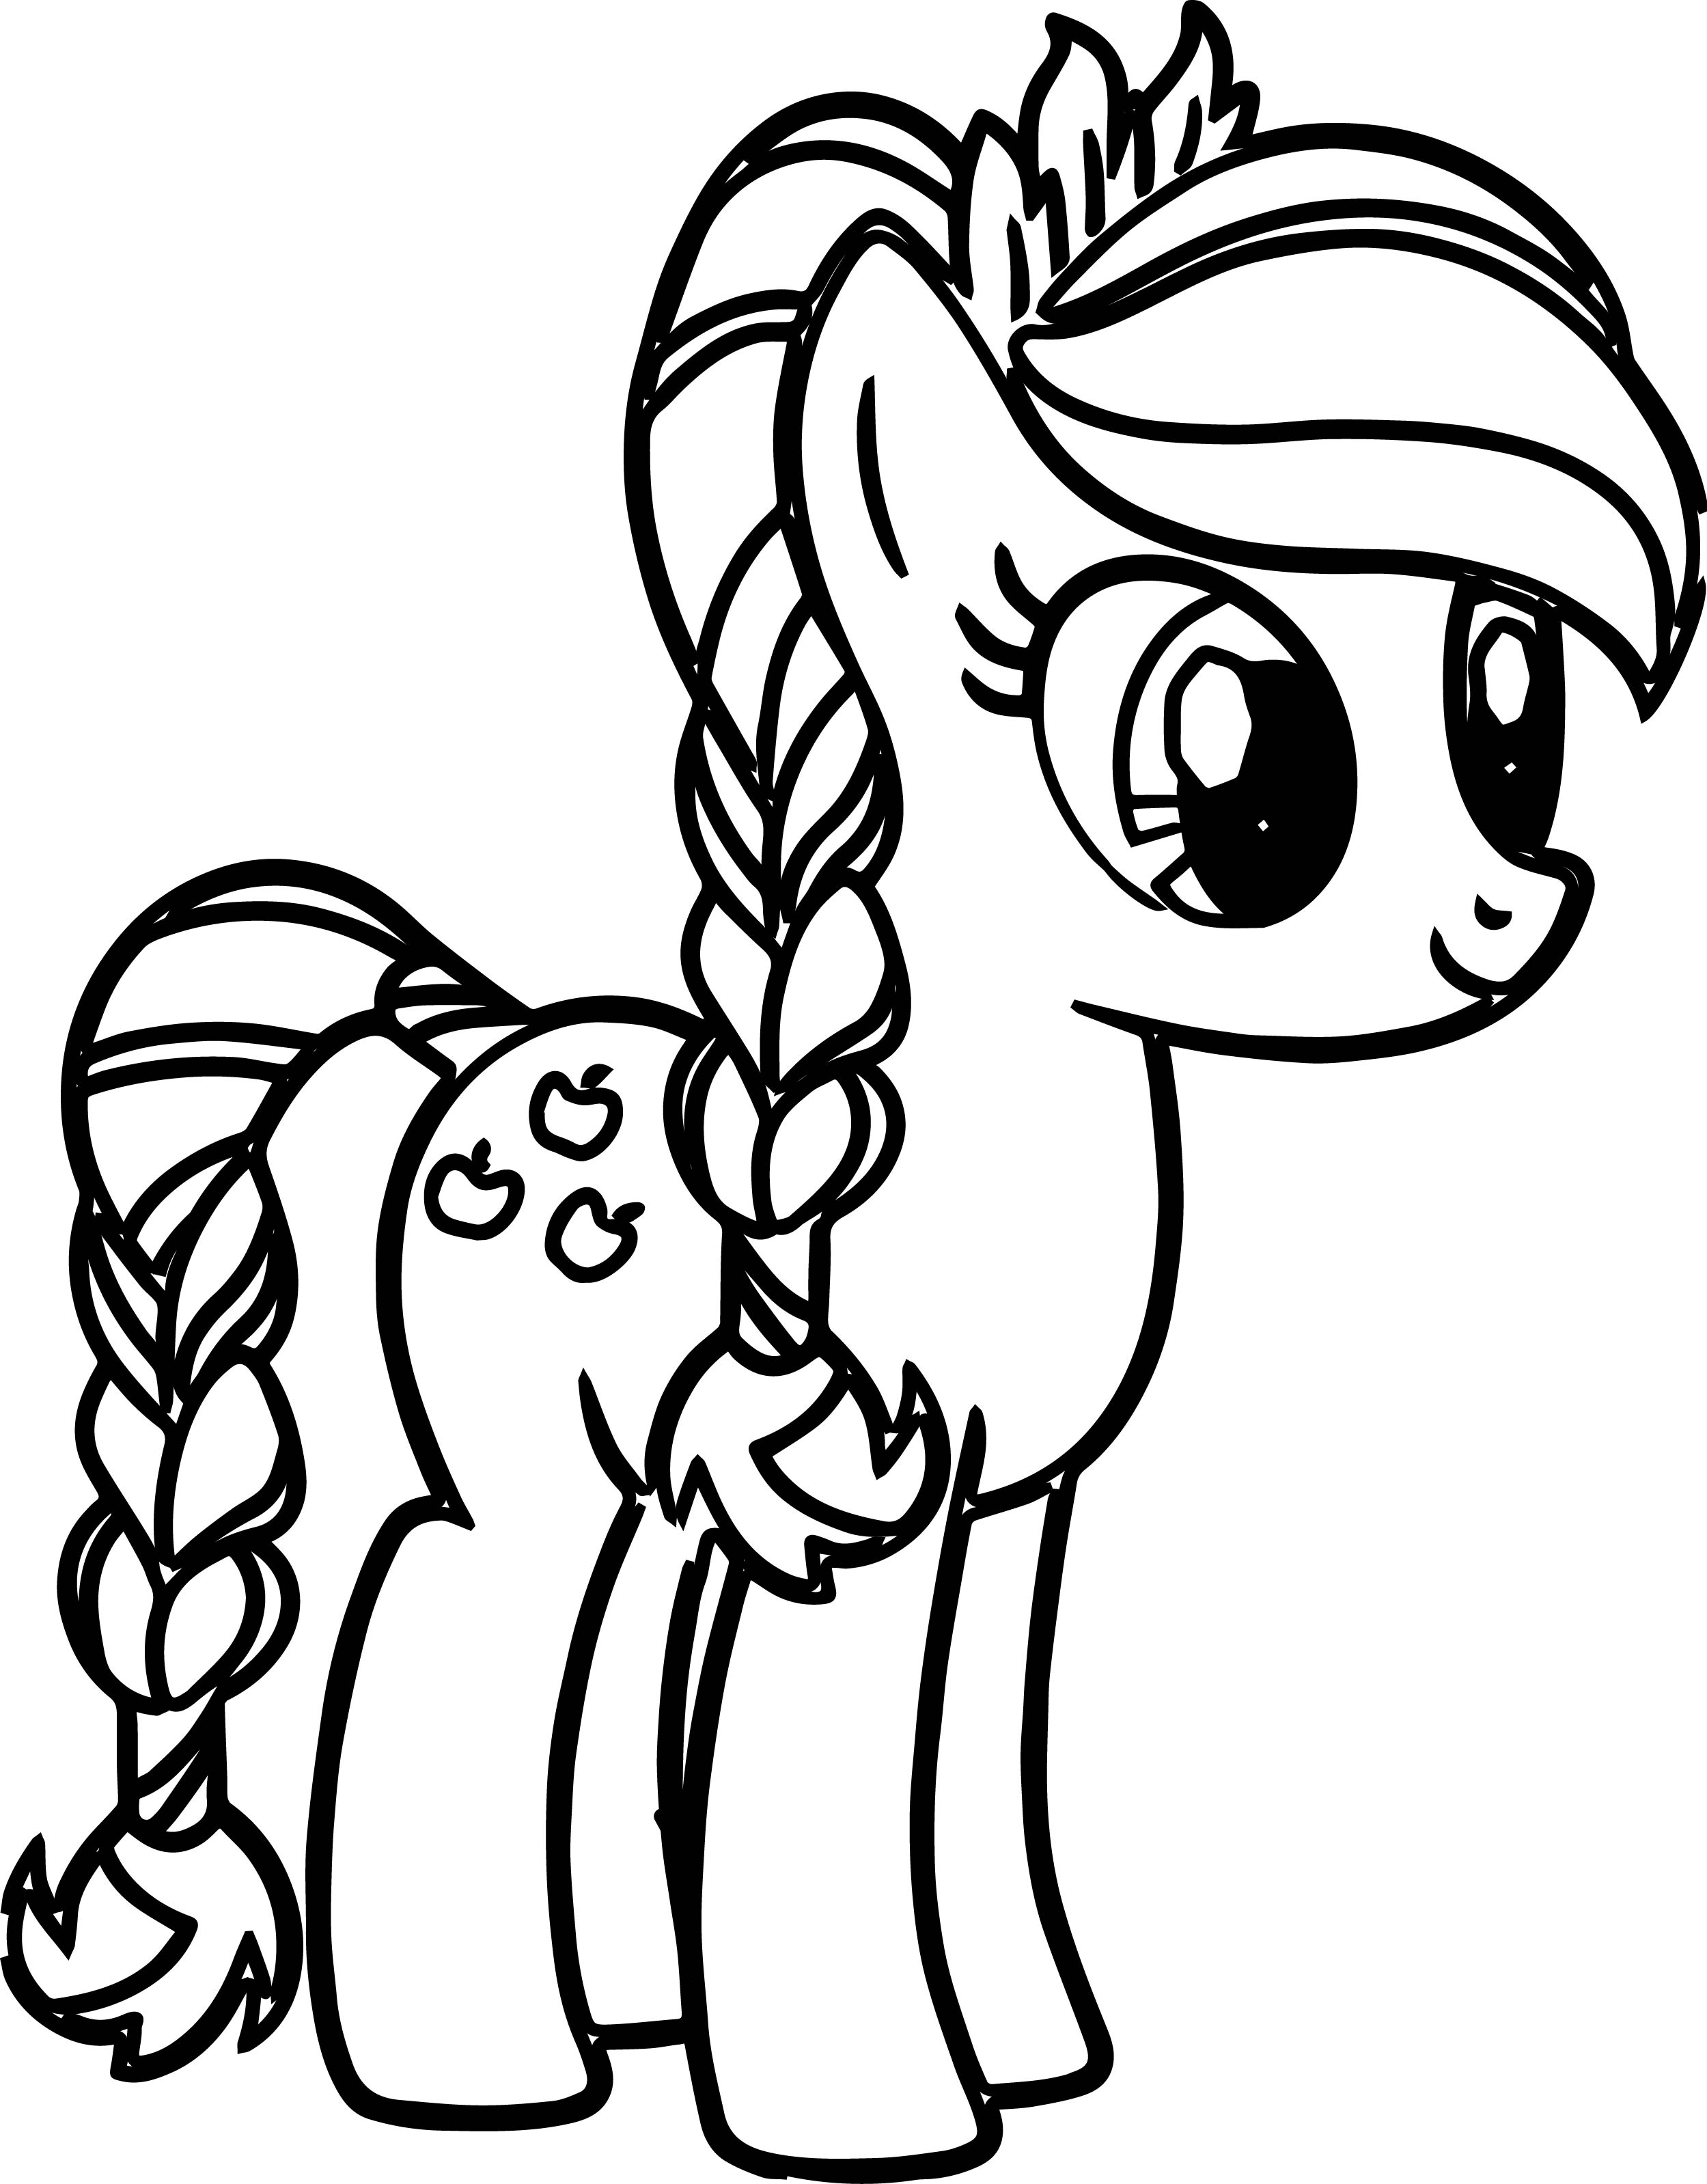 my little pony printing pages my little pony coloring pages pony printing pages my little